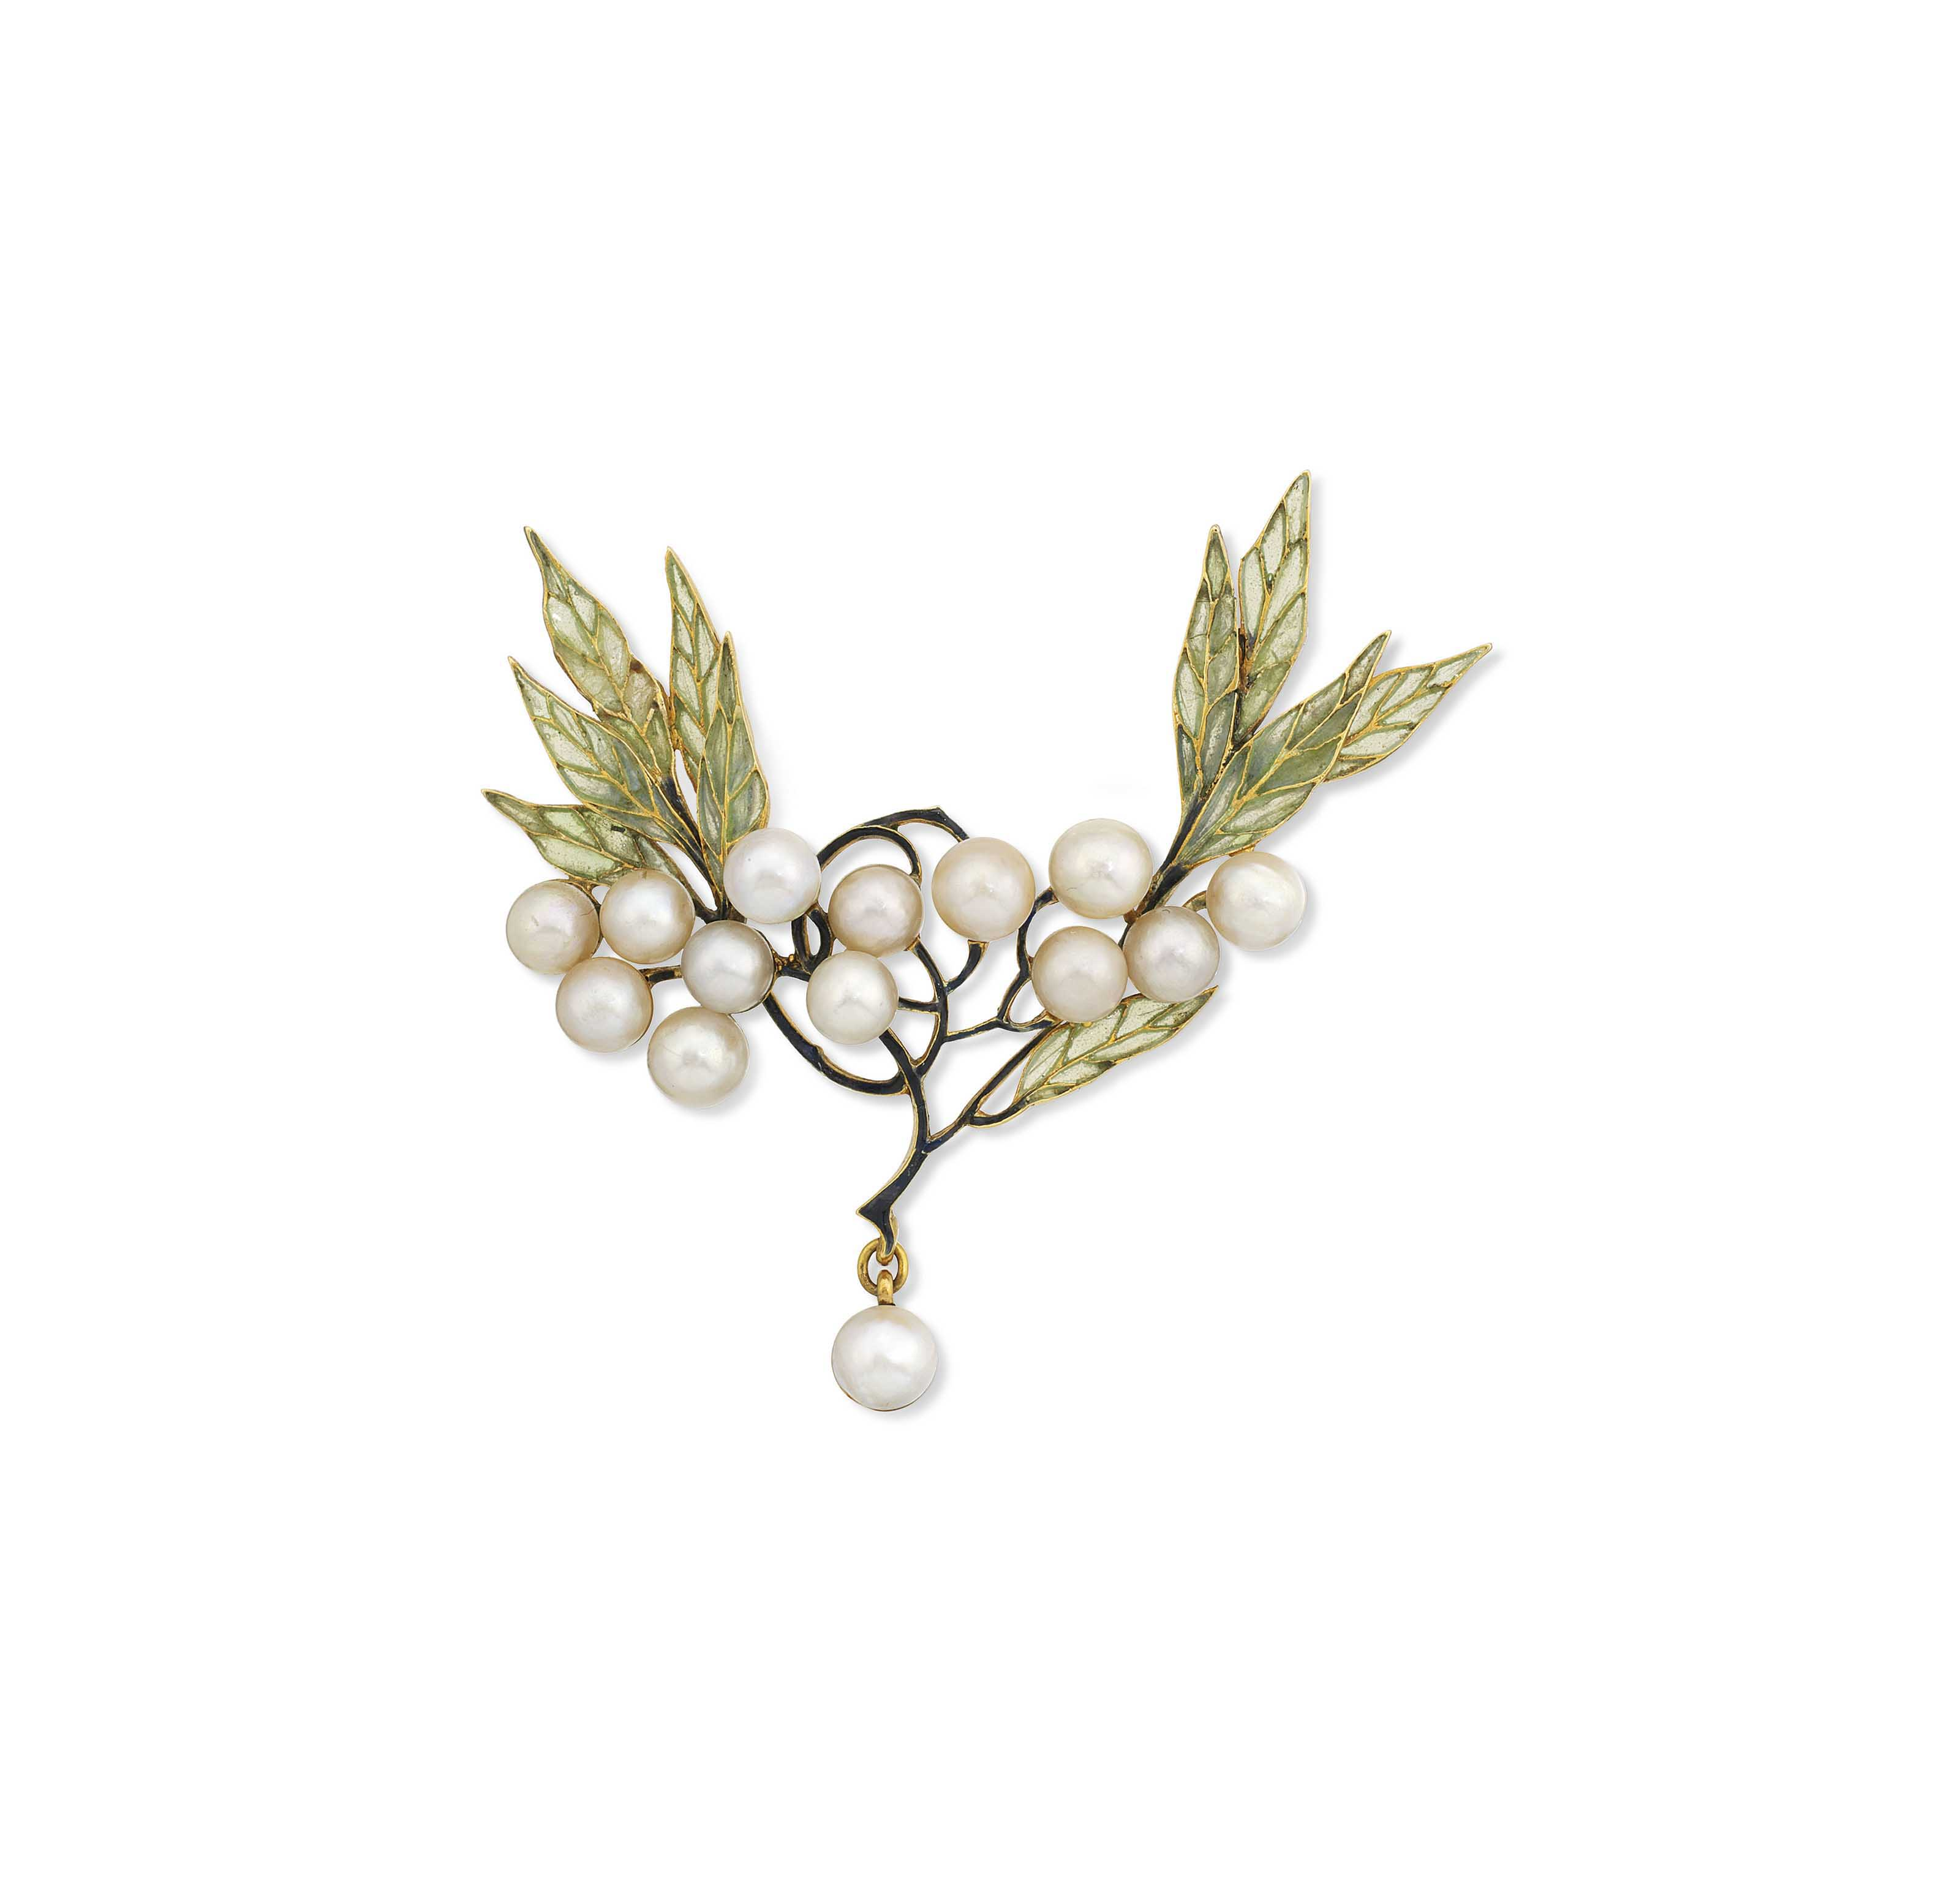 AN ART NOUVEAU PEARL AND ENAME